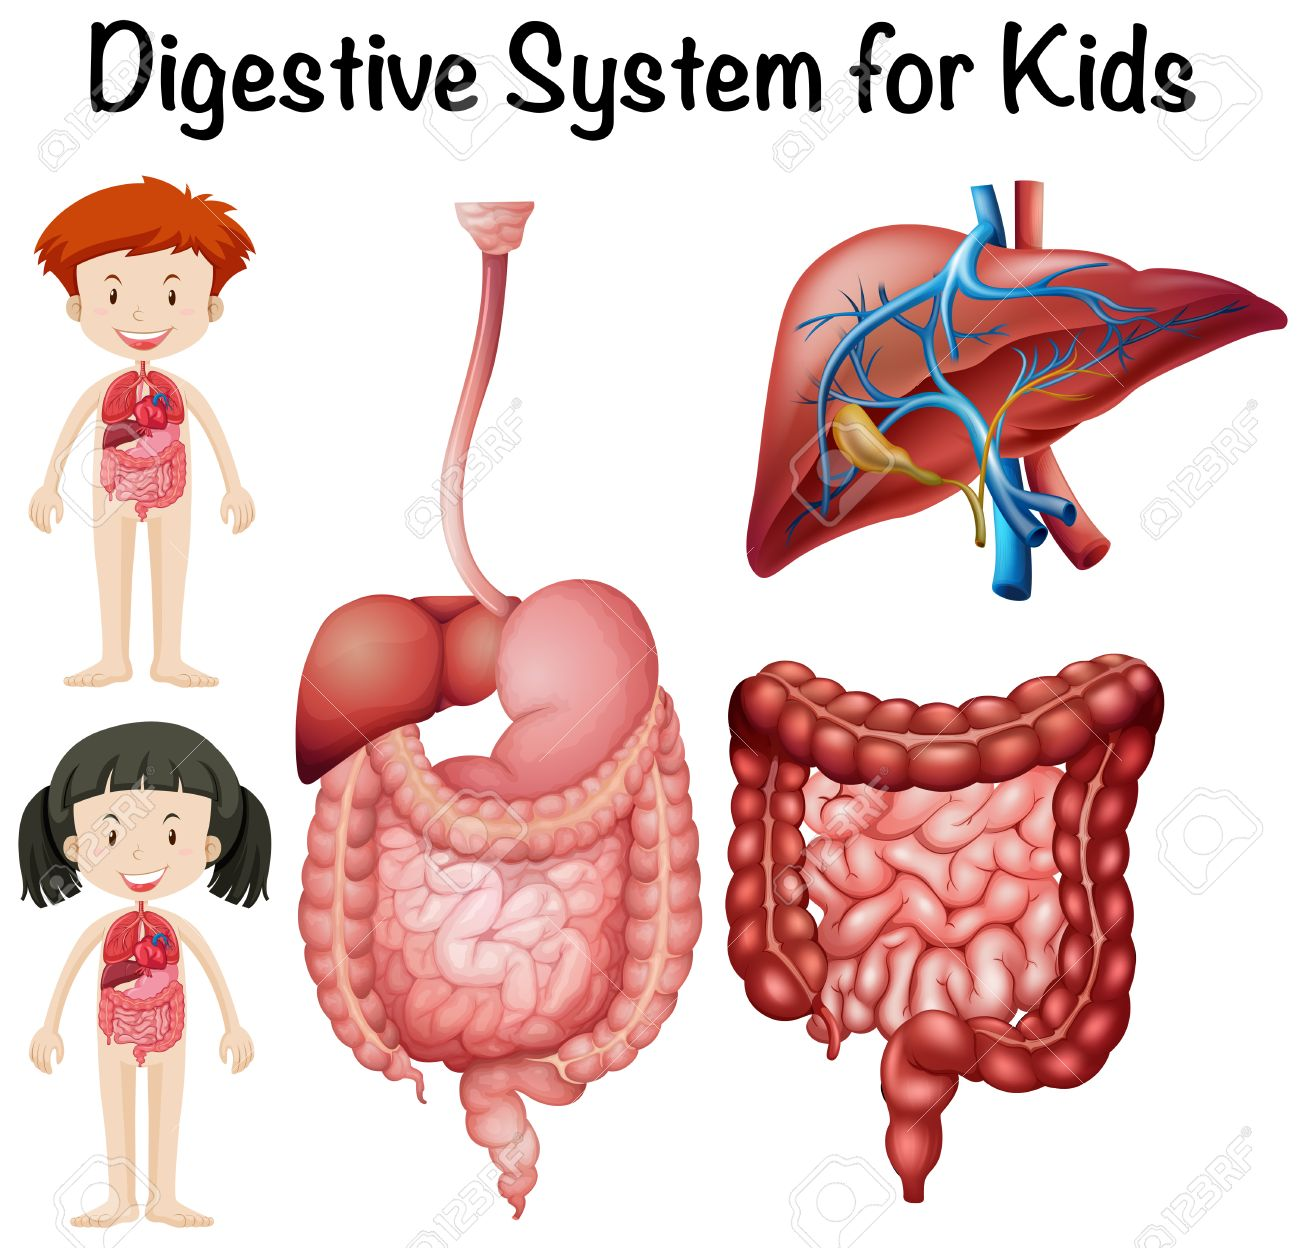 Digestive System For Kids Illustration Royalty Free Cliparts ...